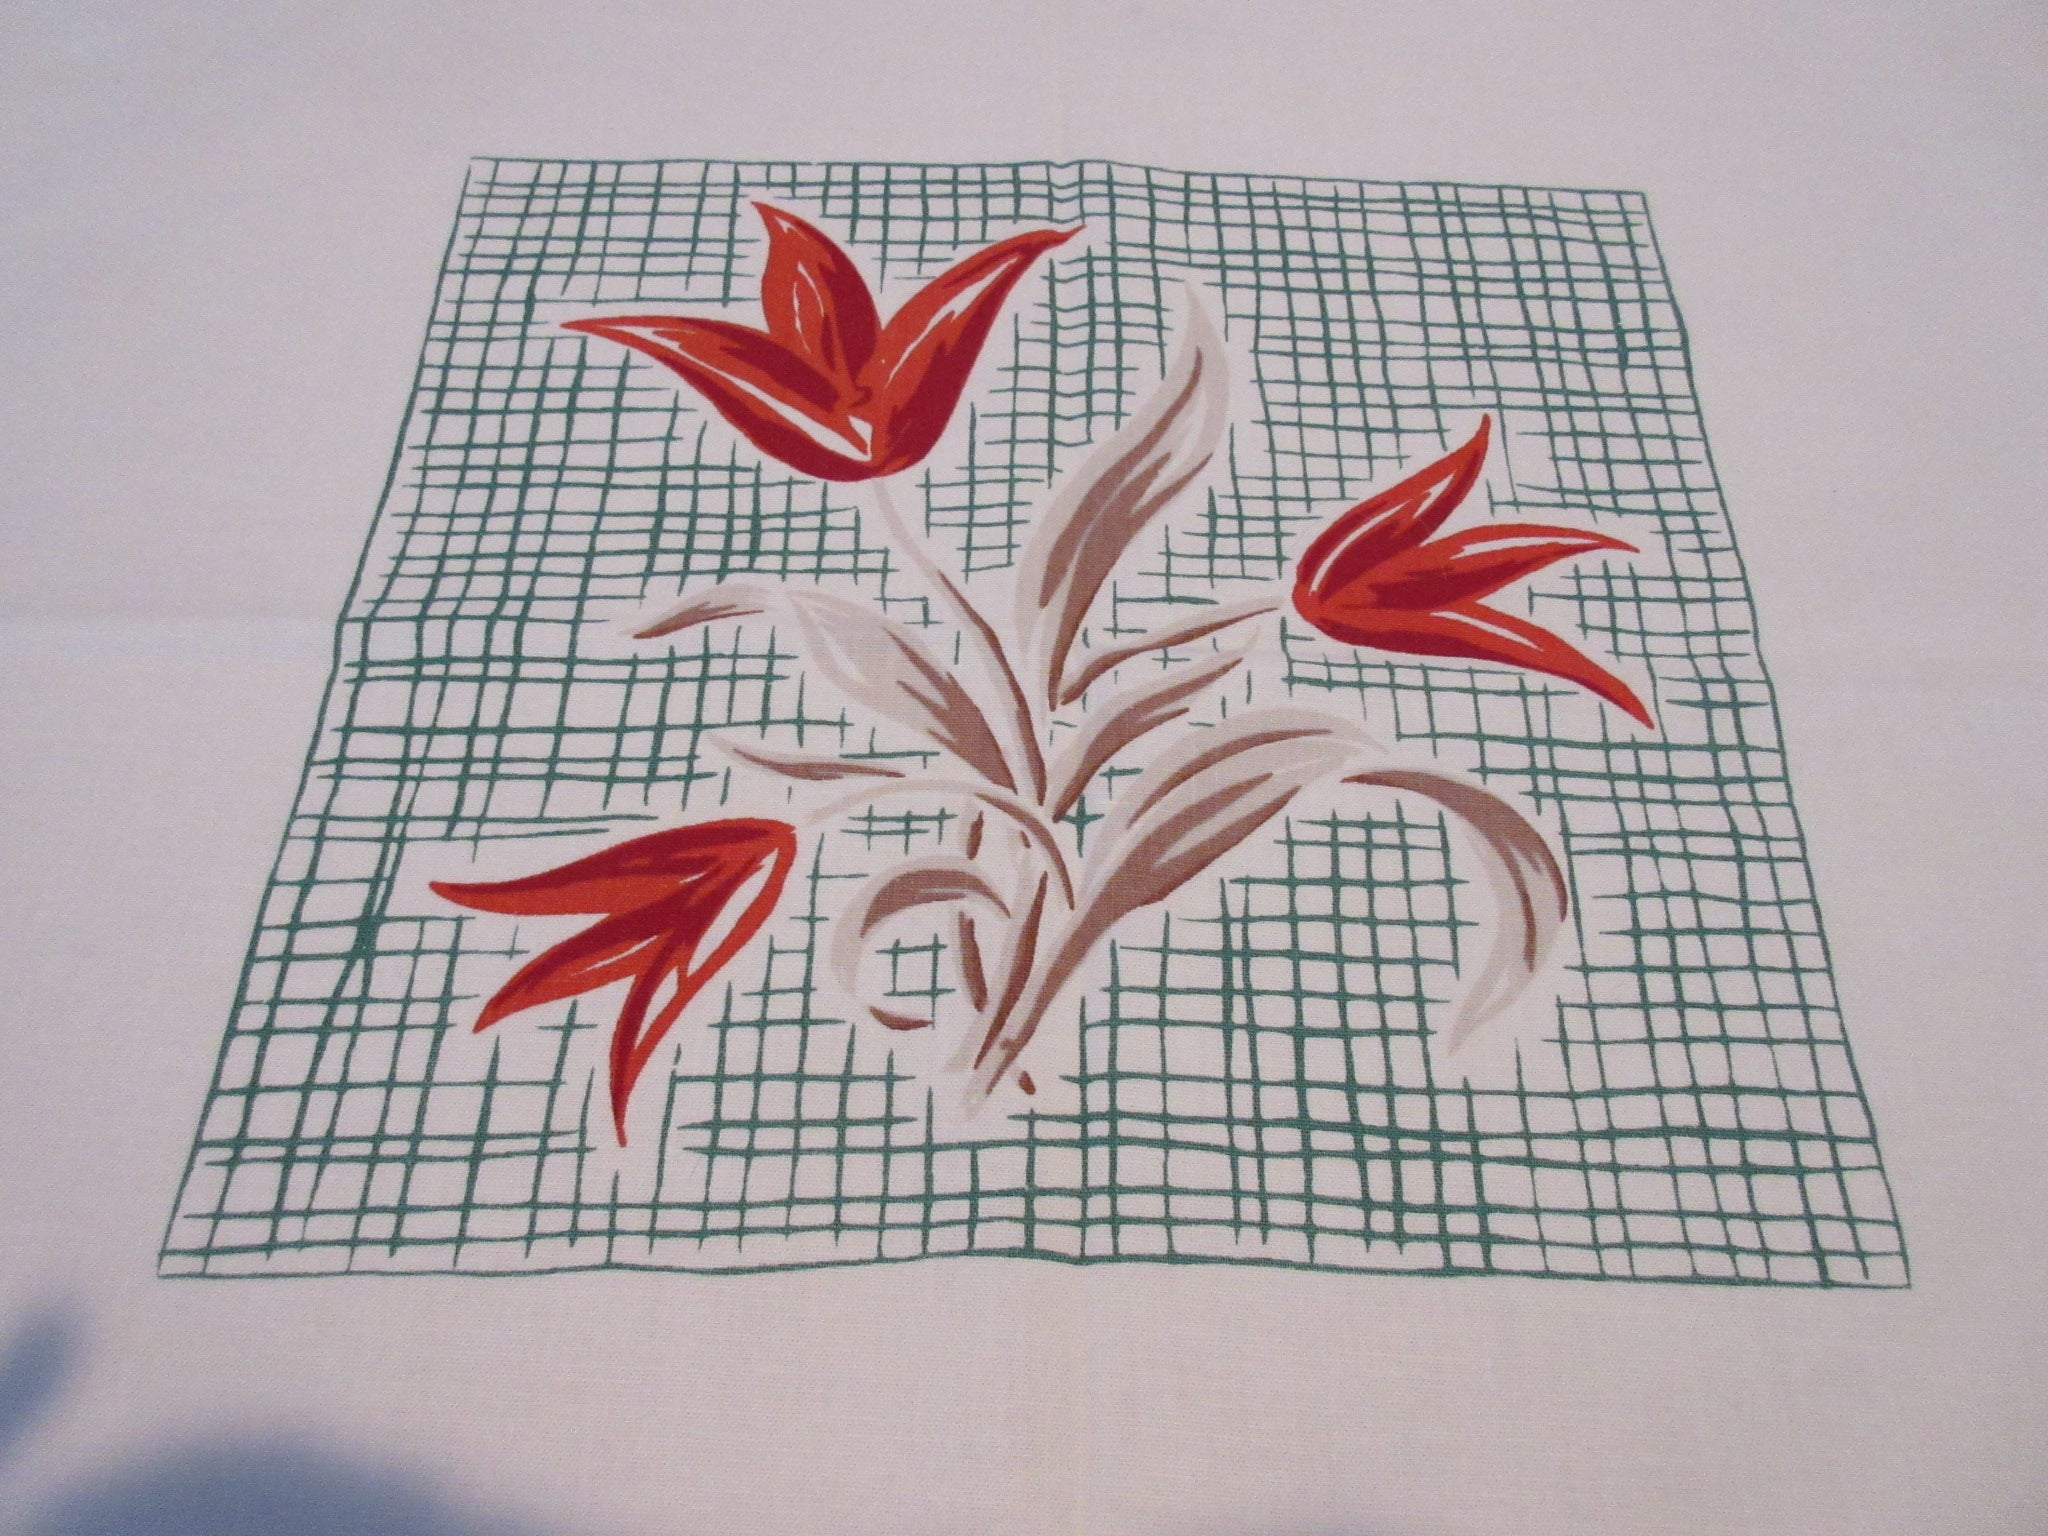 Mod Fall Tulips Plaid Simtex Floral Vintage Printed Tablecloth (52 X 46)